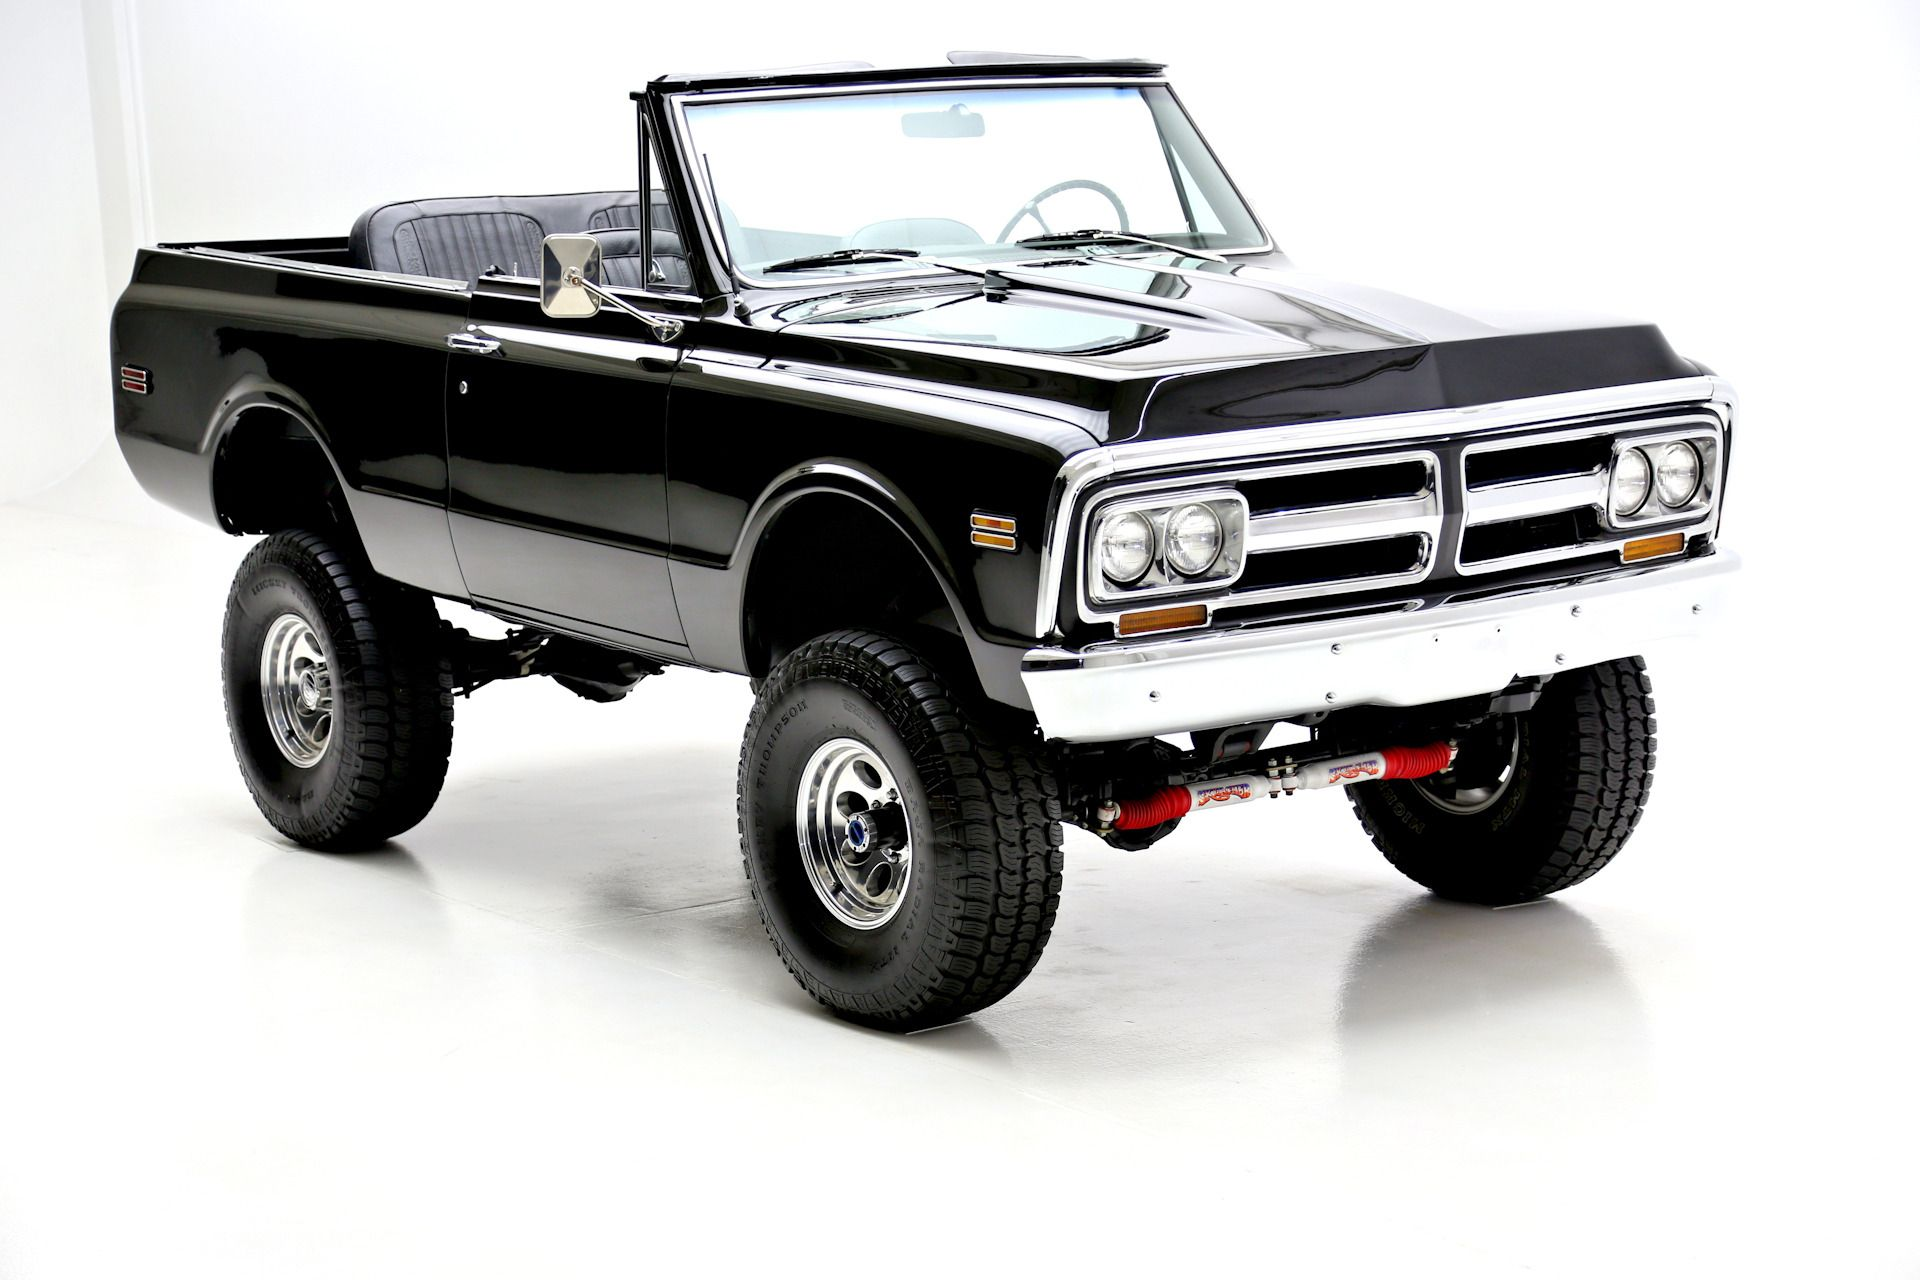 Classic 4x4 trucks and restored vintage suv for sale 4x4